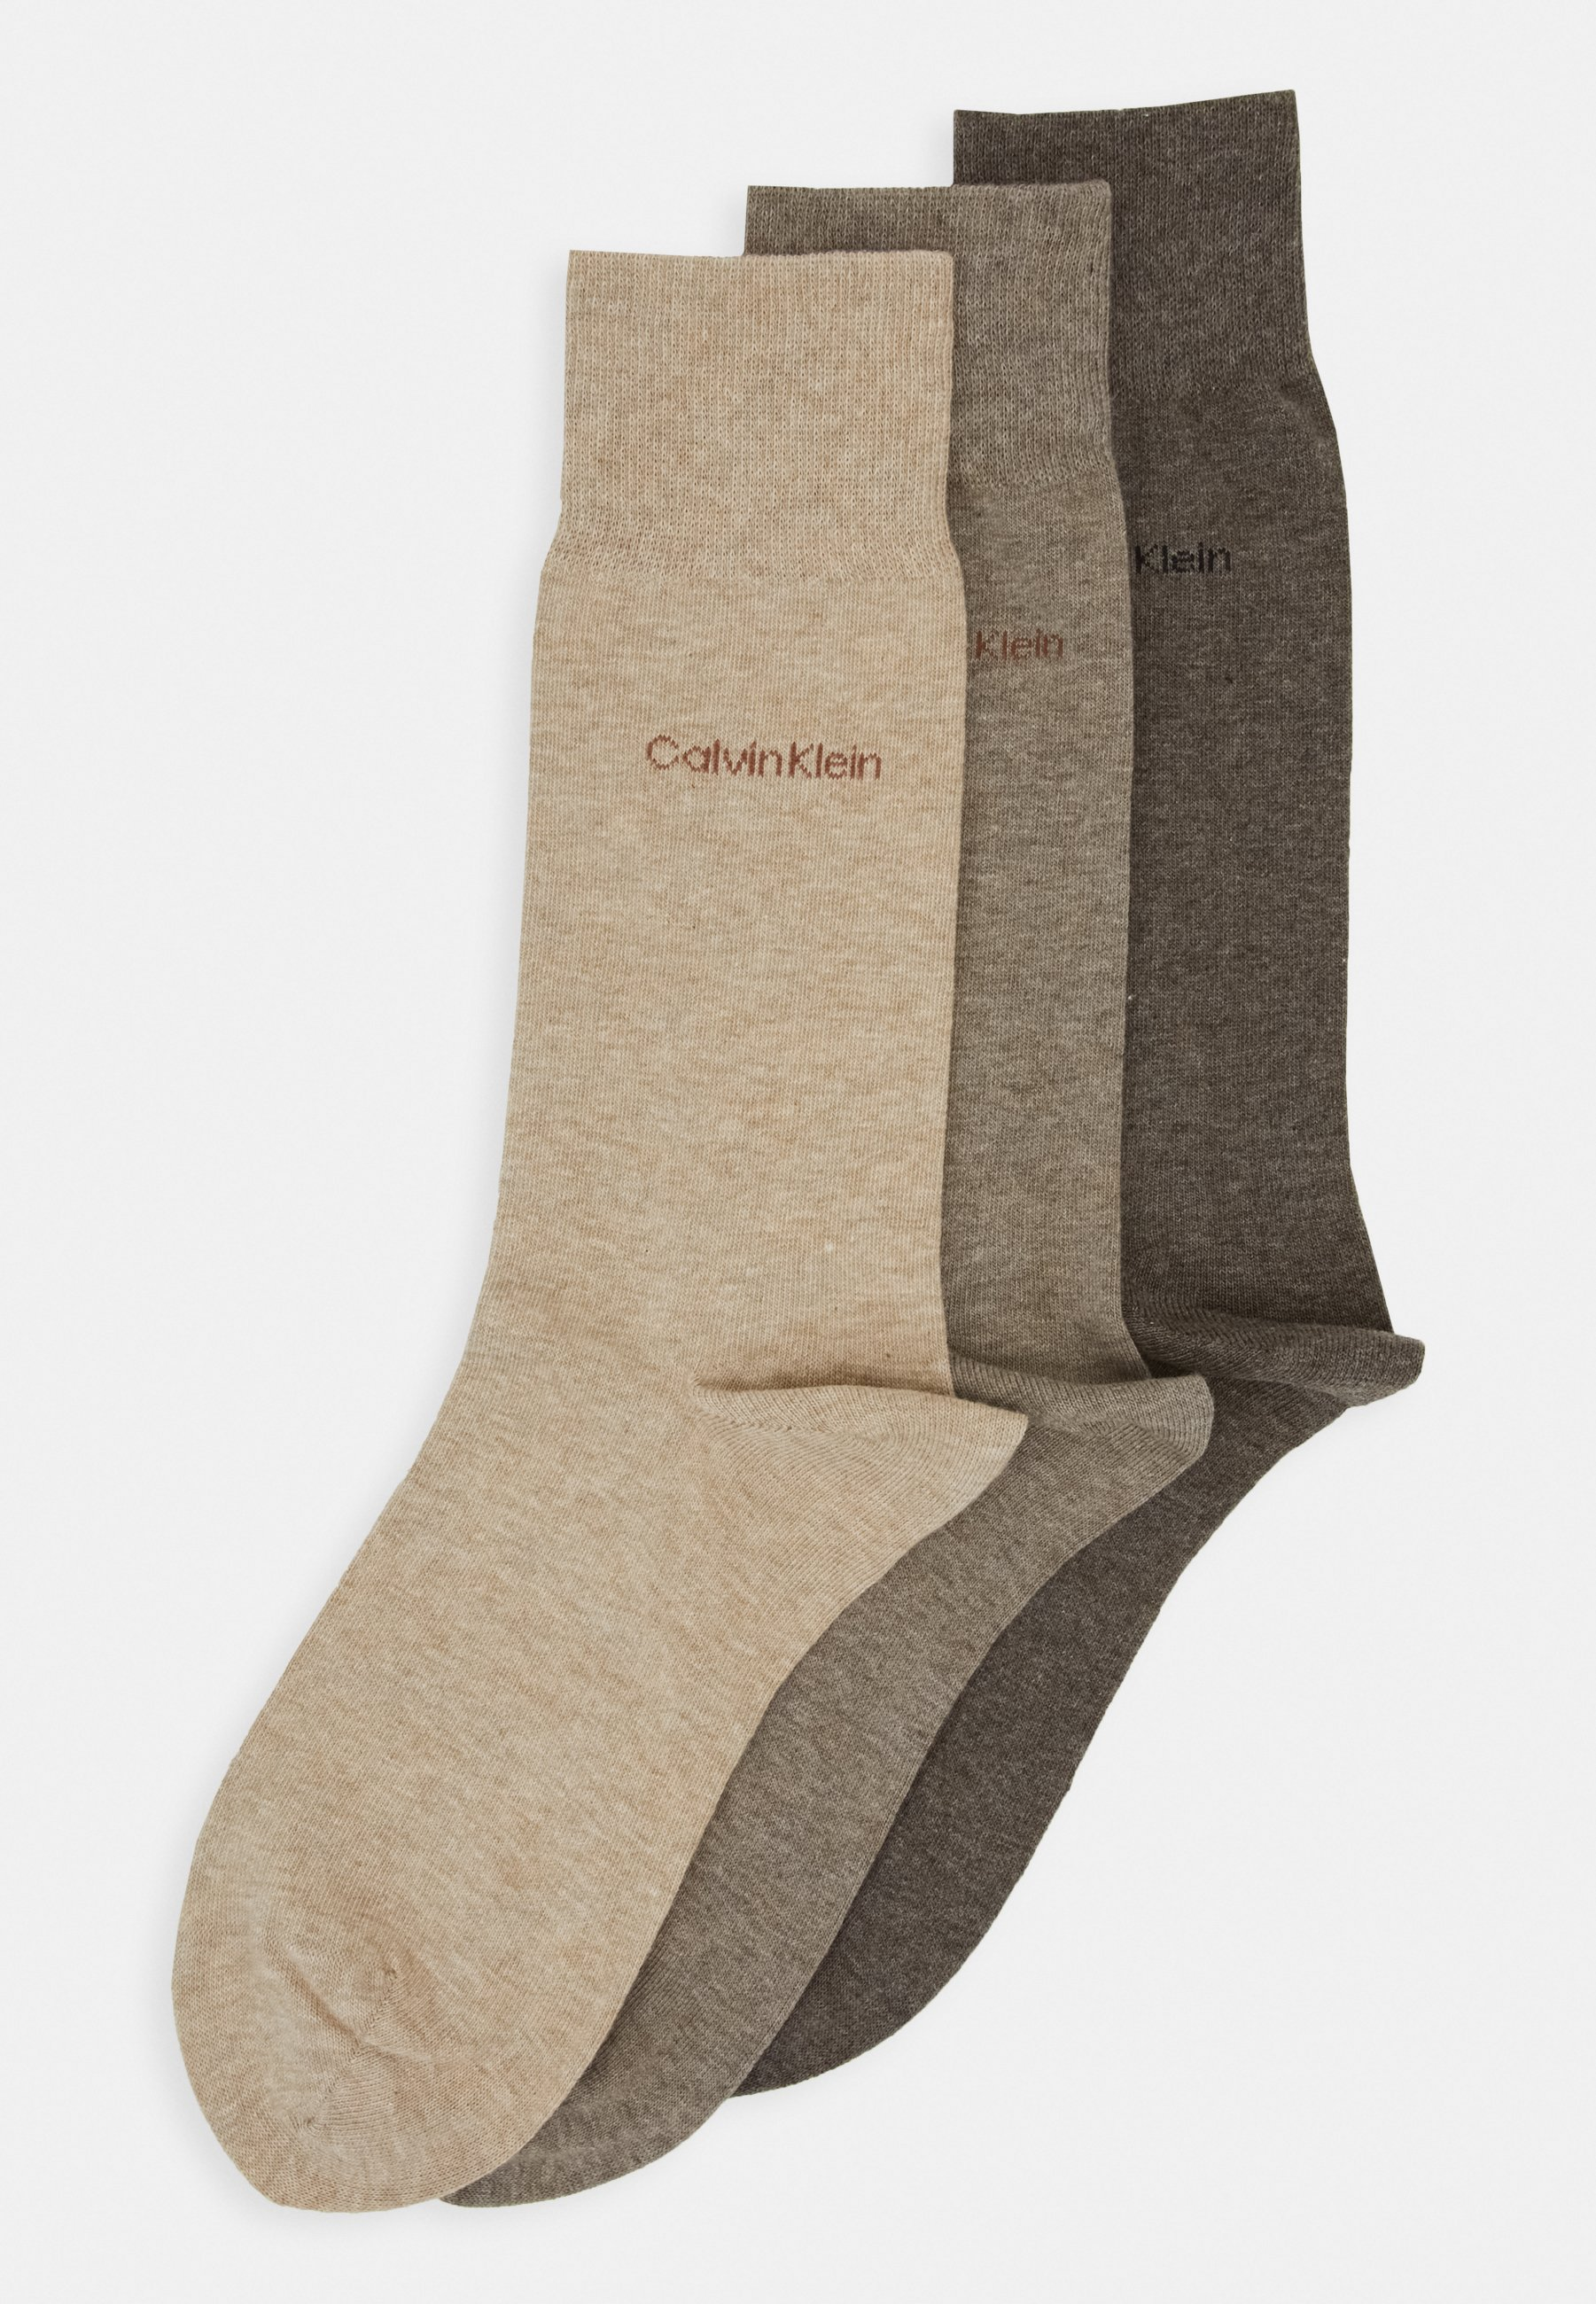 Femme MEN CREW COMBED FLAT ERIC 3 PACK - Chaussettes